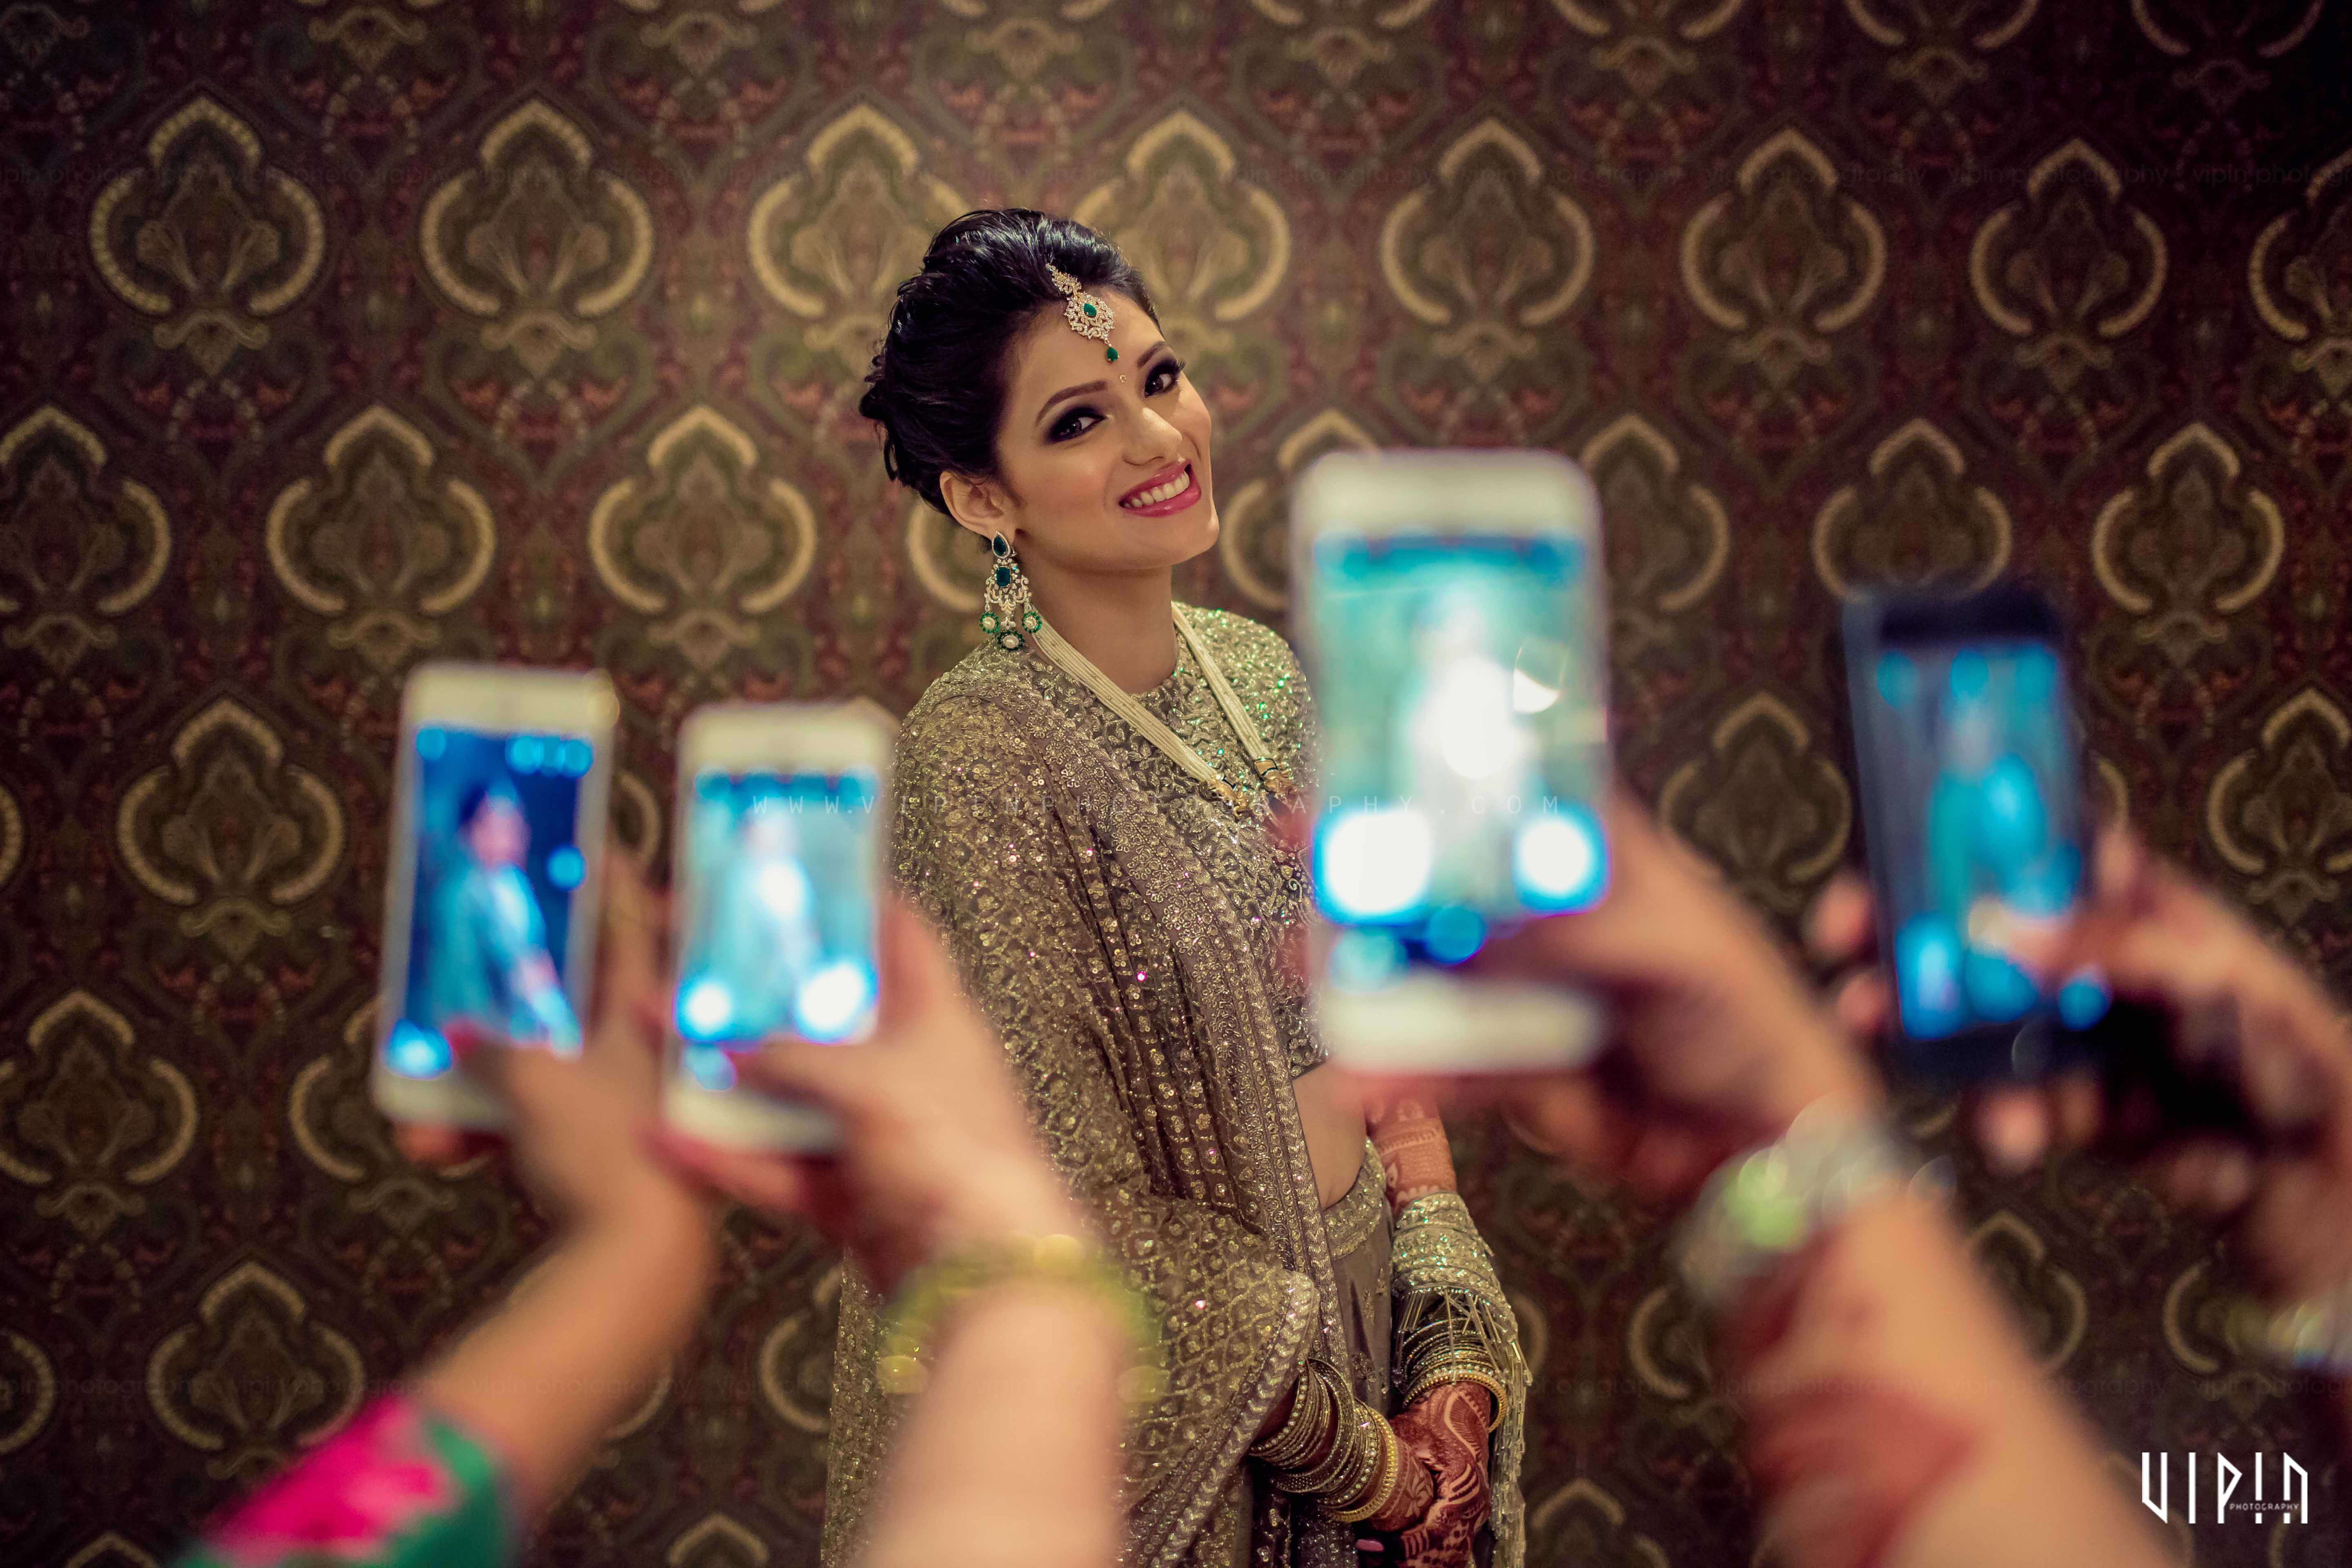 the selfie click!:vipin photography, bianca, sabyasachi couture pvt ltd